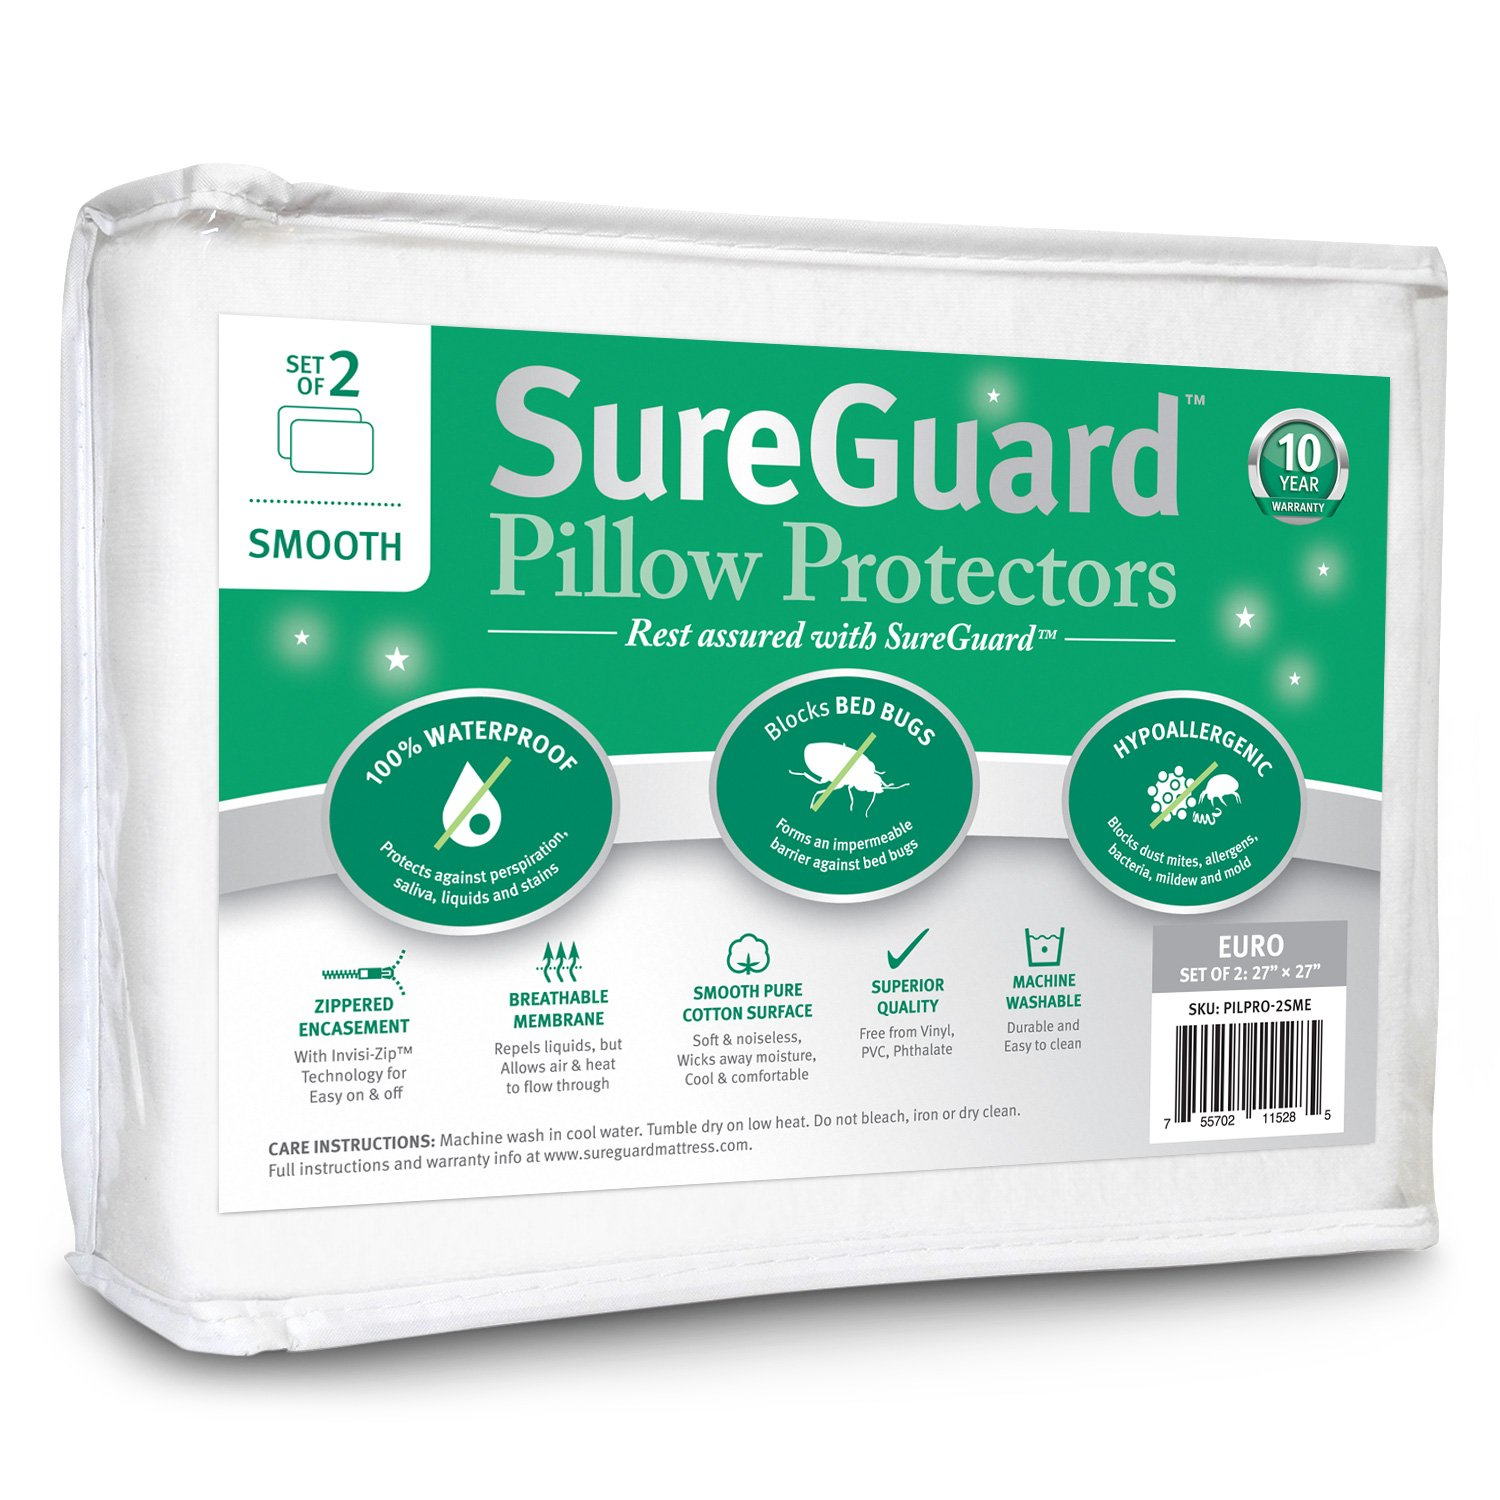 Set of 2 Euro Size SureGuard Pillow Protectors - 100% Waterproof, Bed Bug Proof, Hypoallergenic - Premium Zippered Cotton Covers - 10 Year Warranty - Smooth